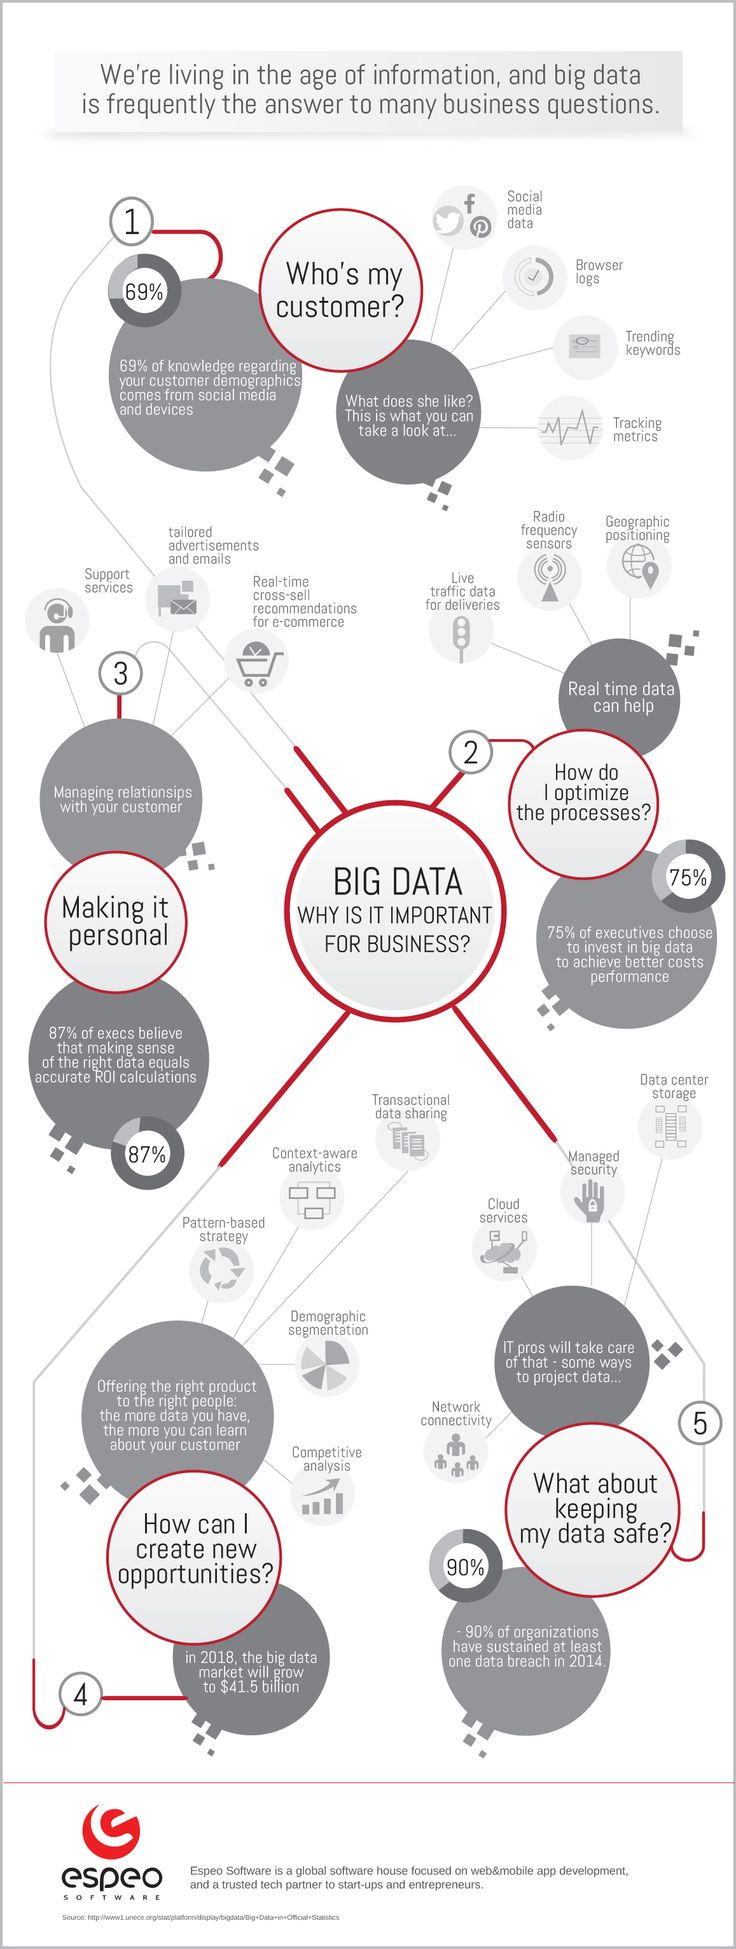 Why is Big Data important for businesses?